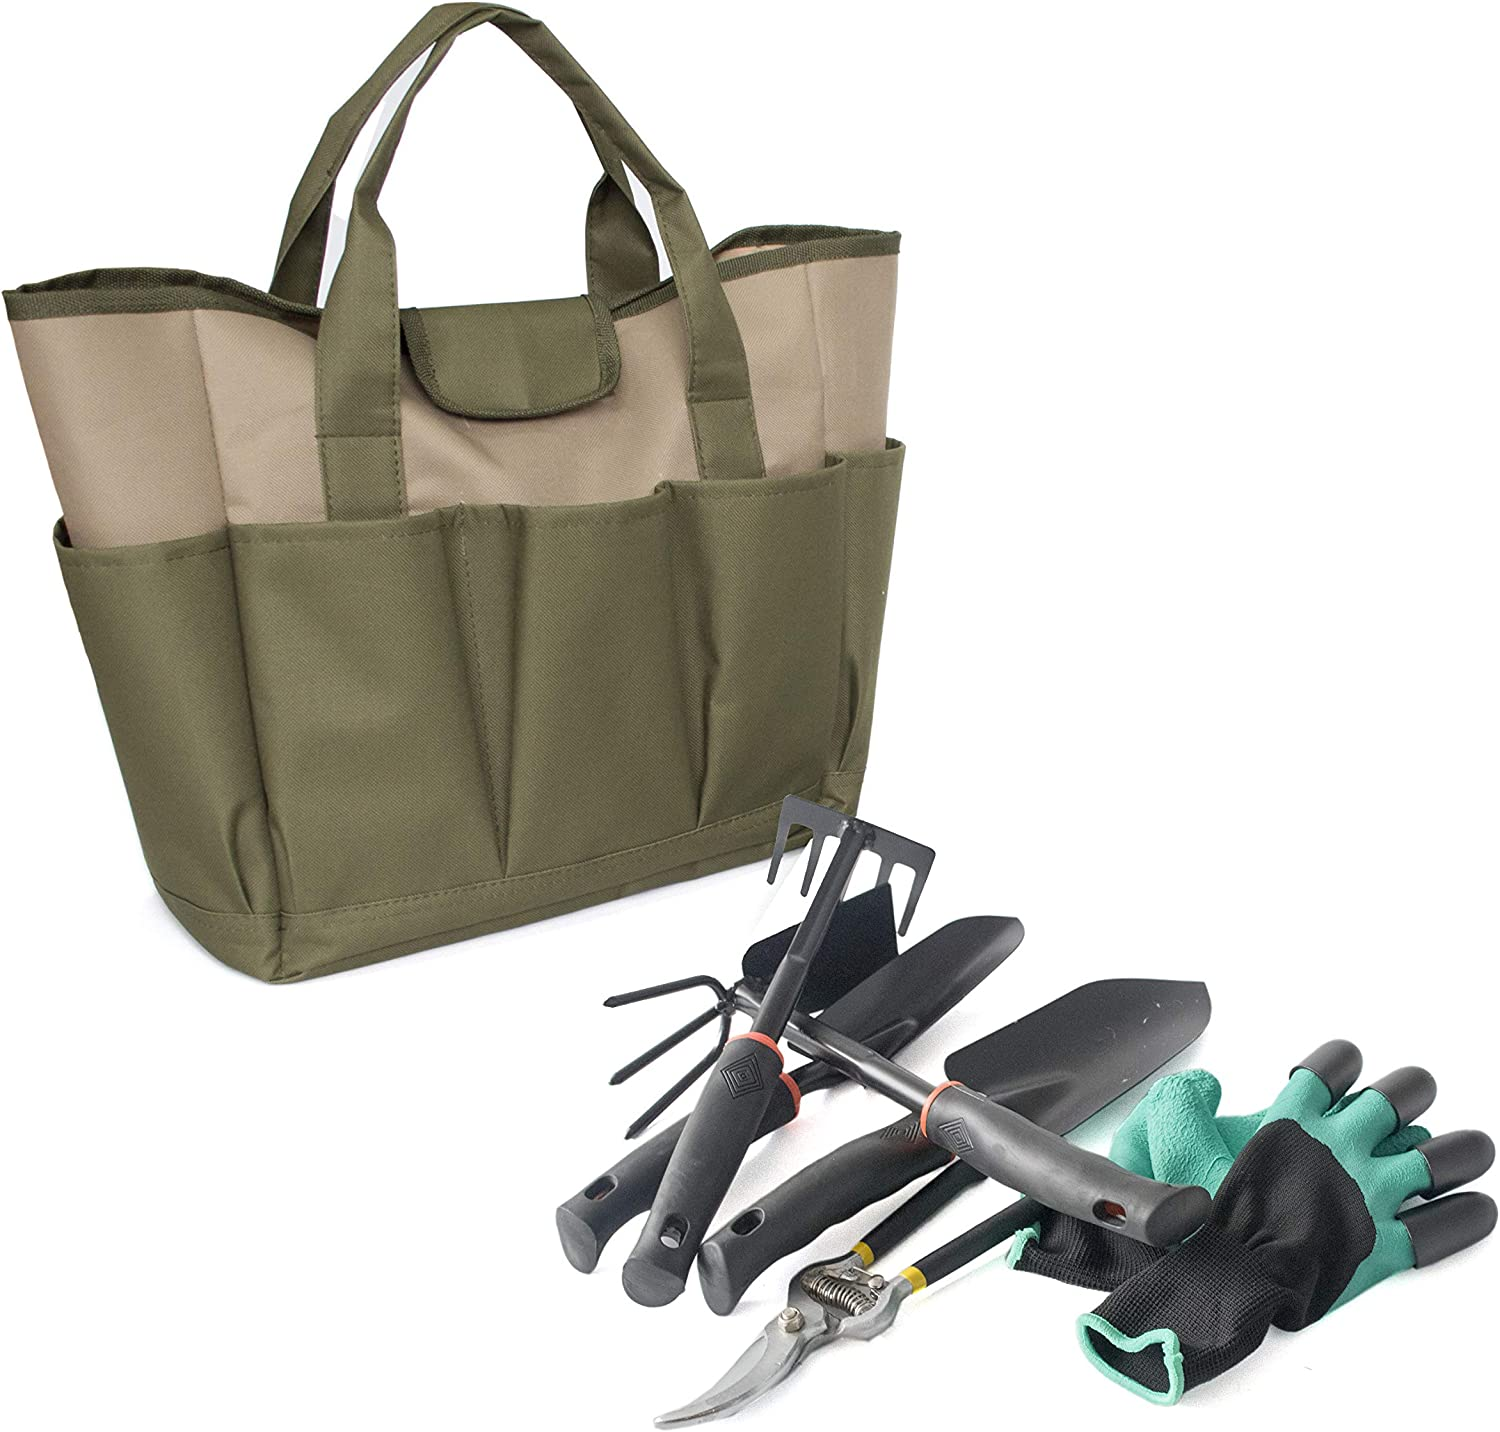 Garden Tote Canvas Accessories Green Set Kit Garden Tools Storage Bag with Pockets Gardening Gifts for Women